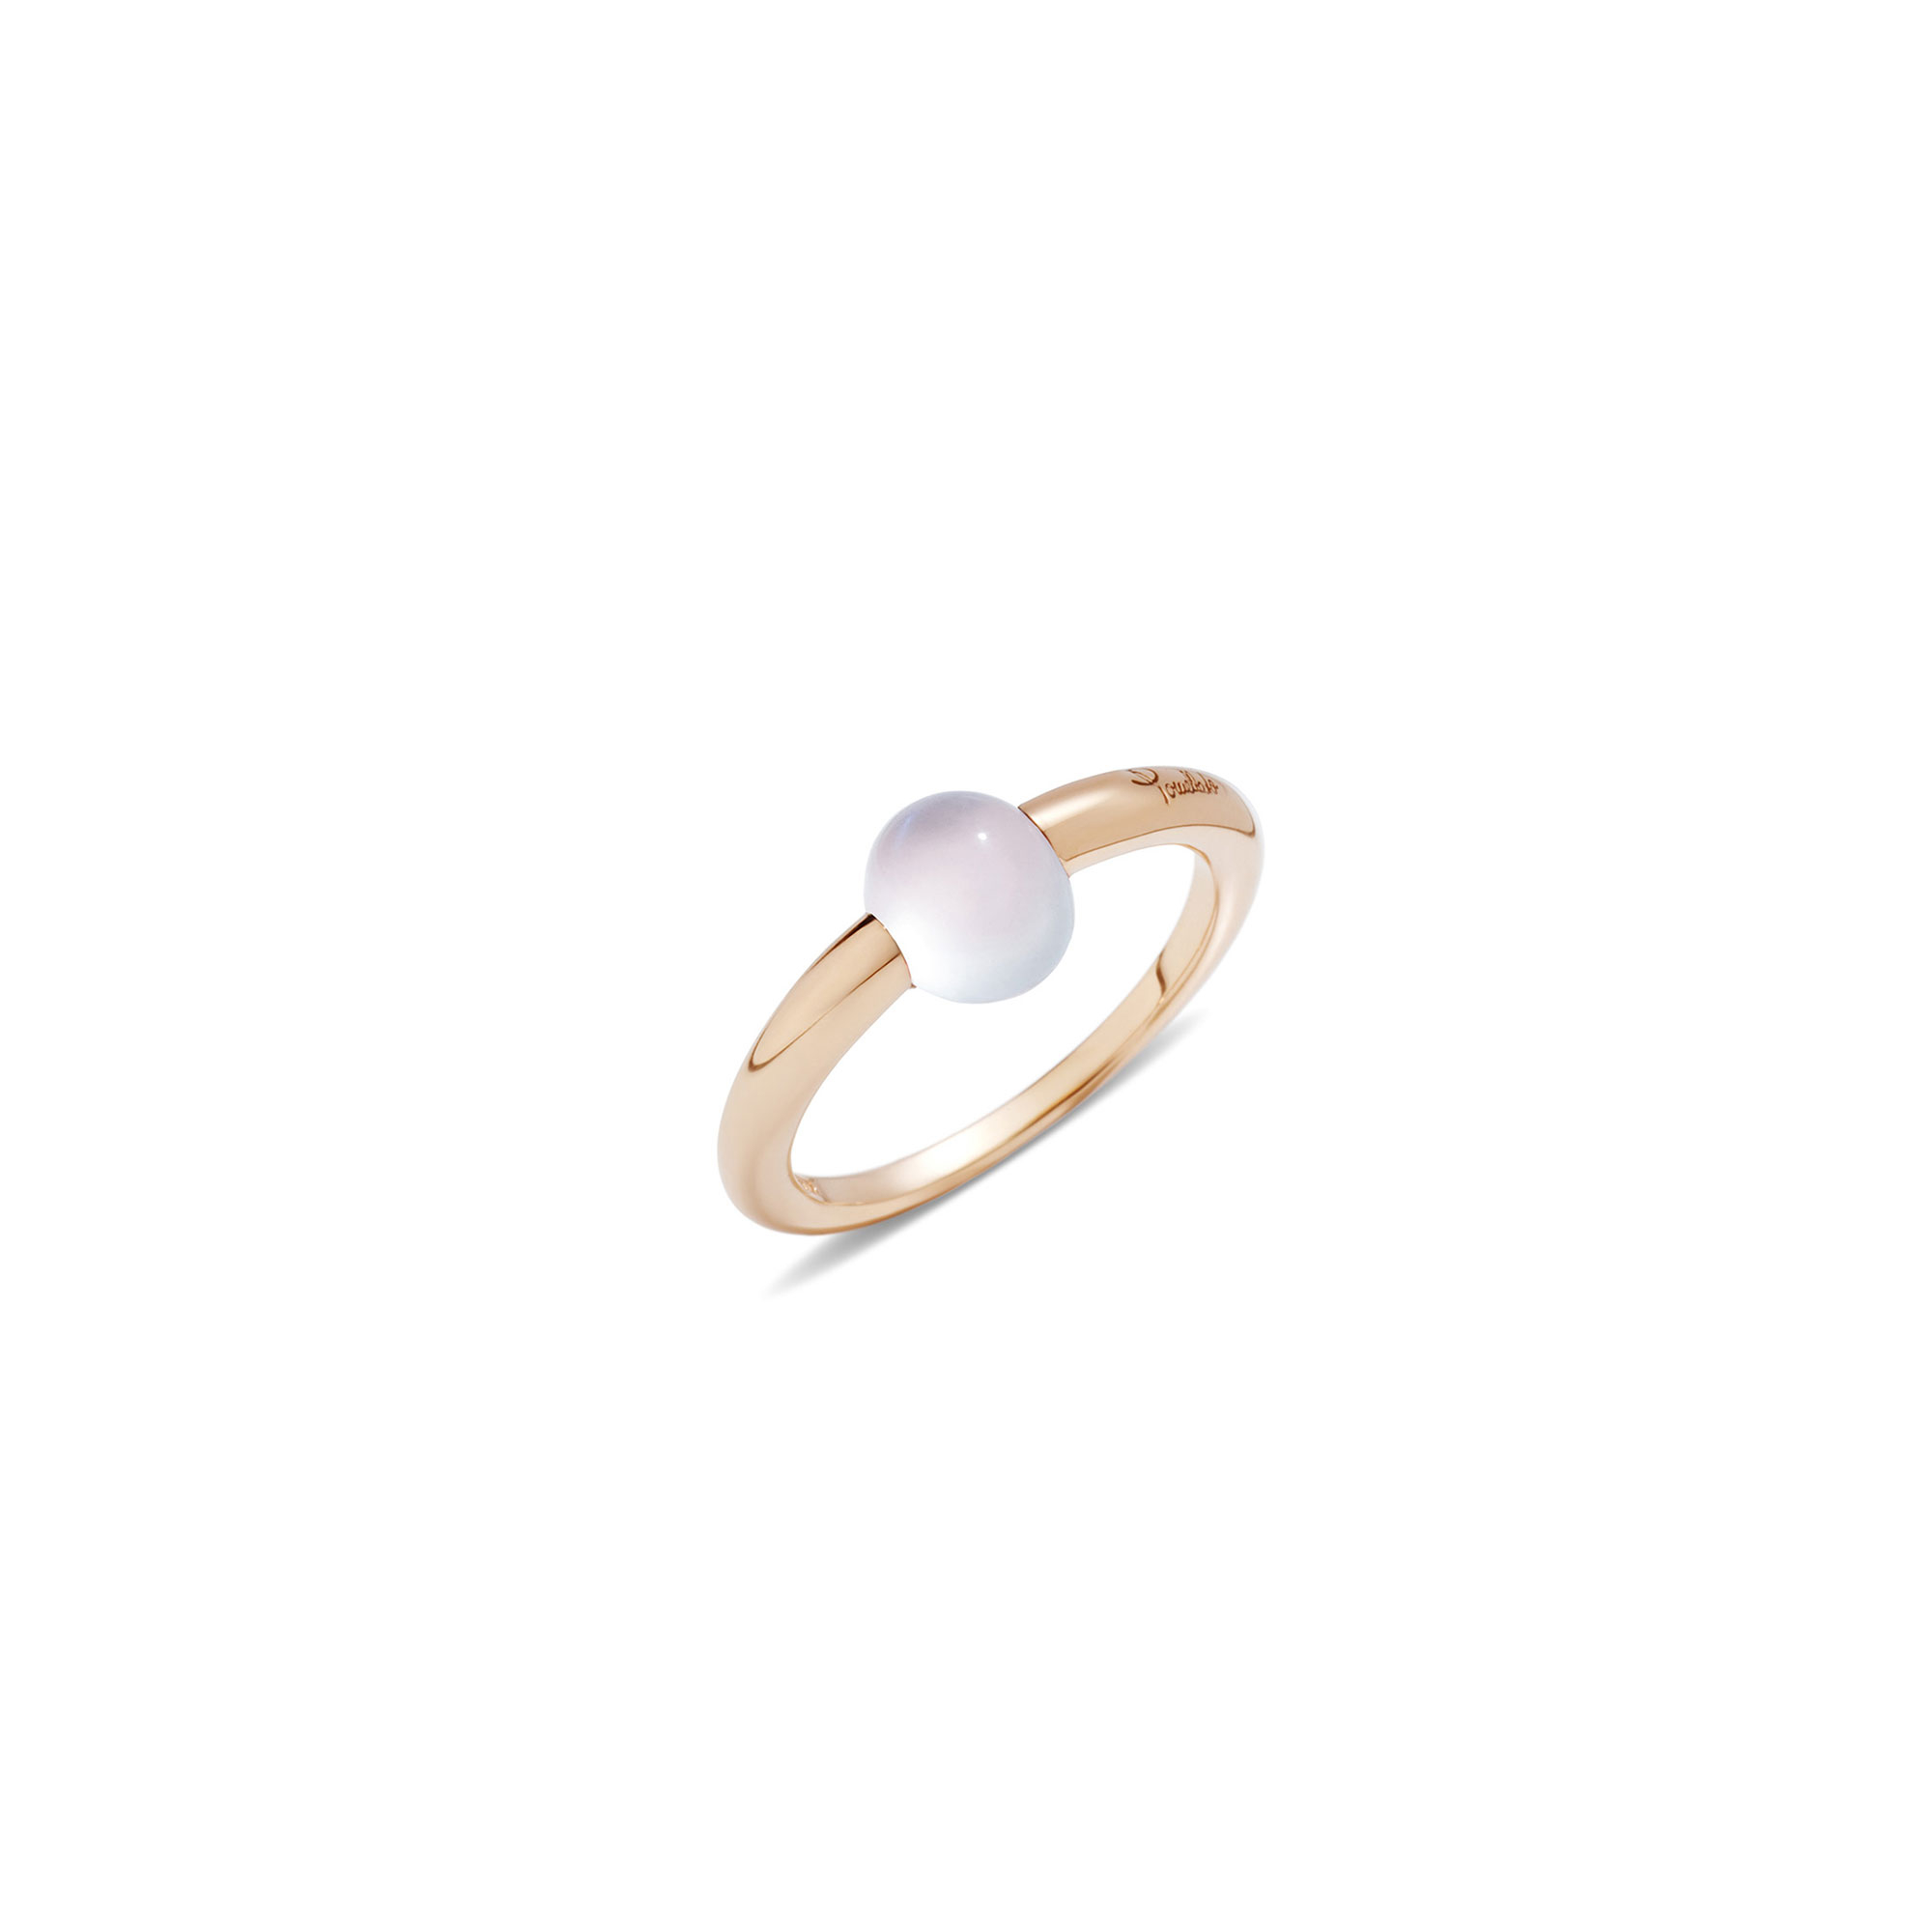 M'AMA NON M'AMA RING MOONSTONE (ADULARIA)